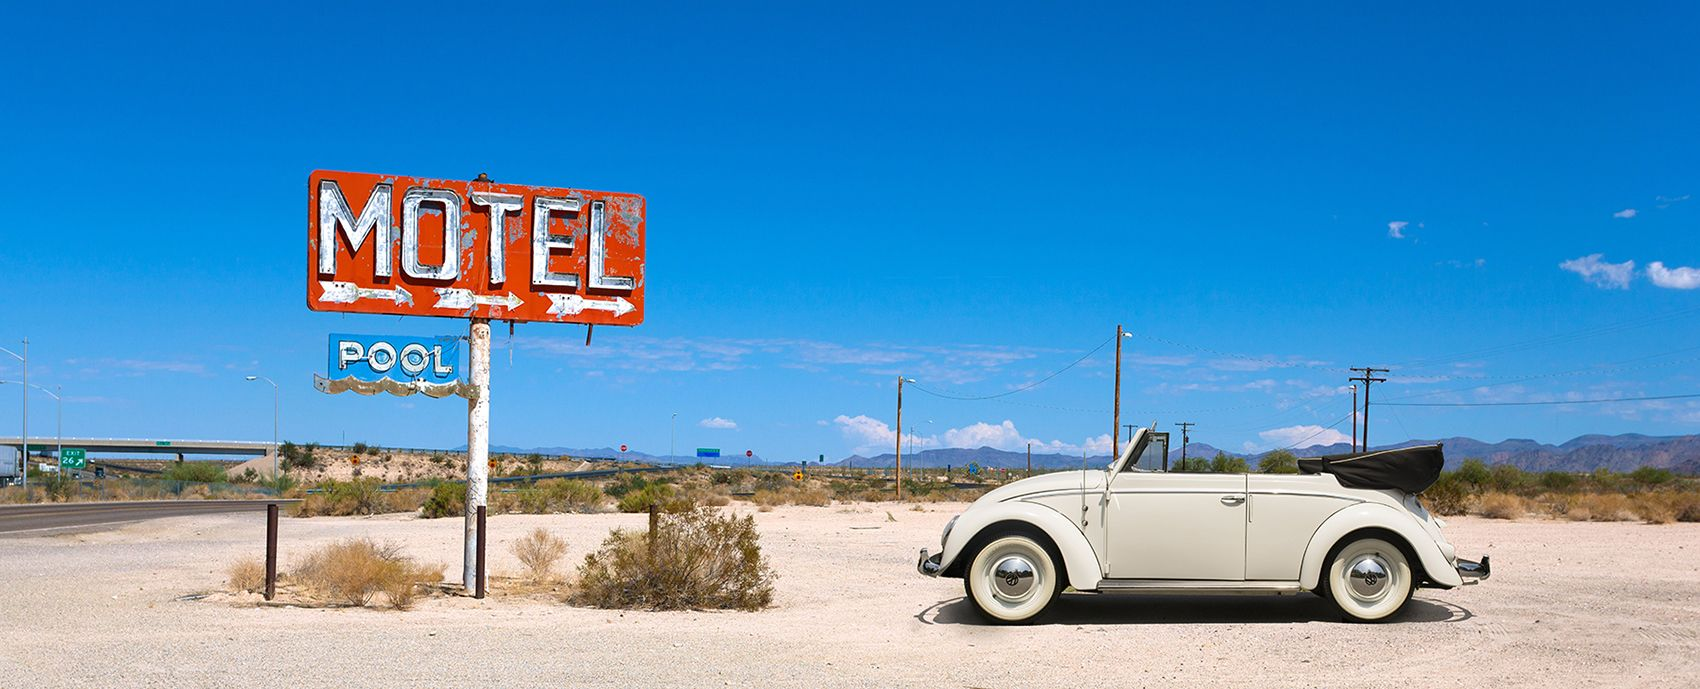 VW-at-last-motel.jpg